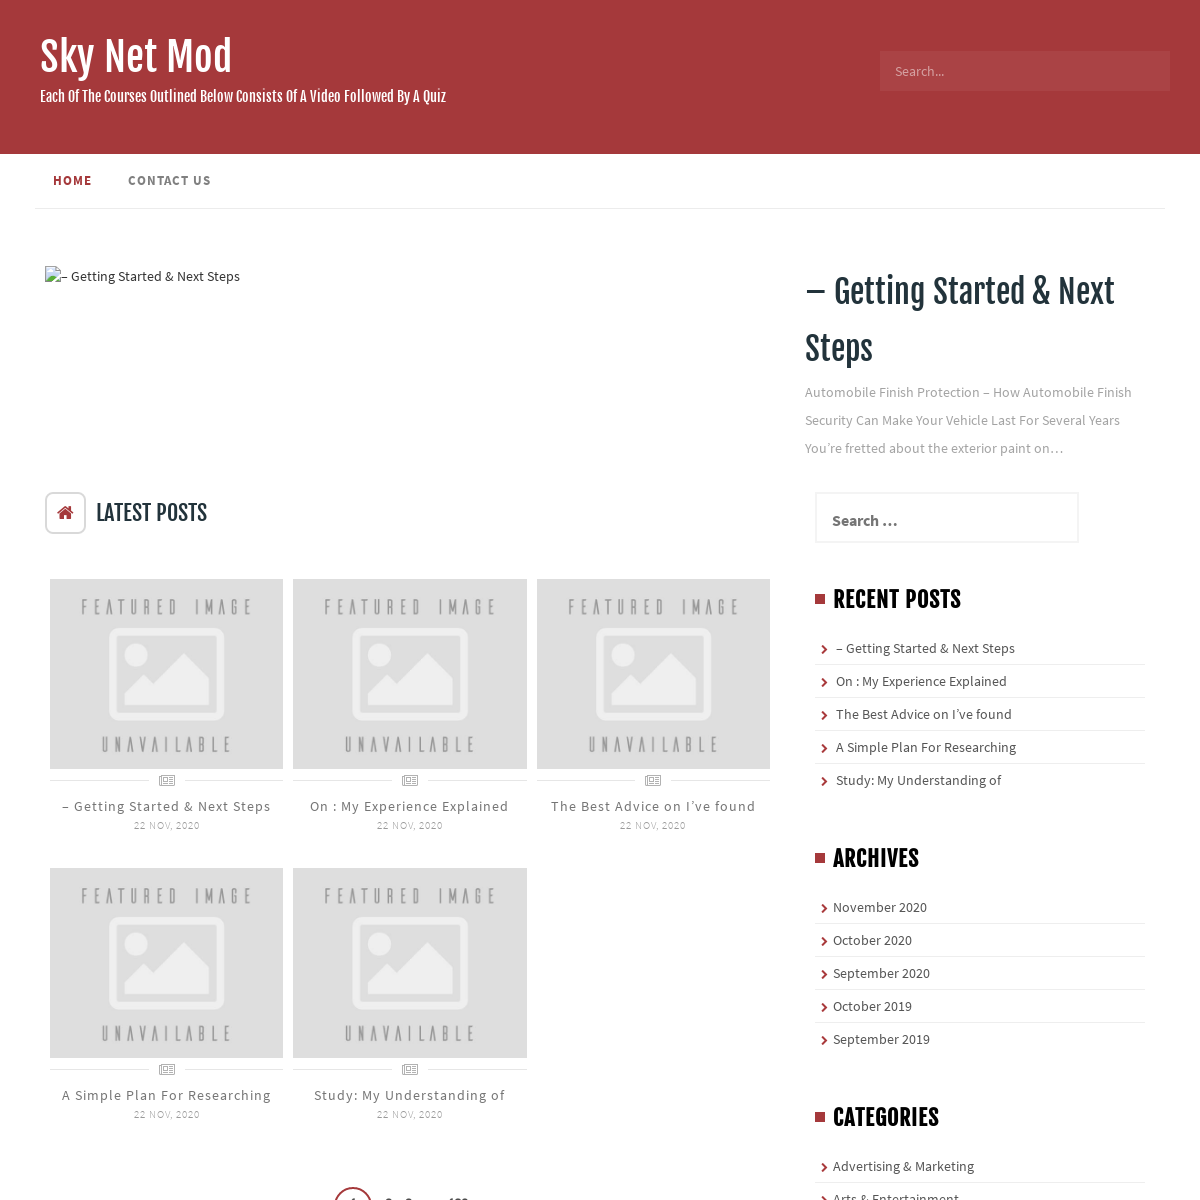 Sky Net Mod – Each Of The Courses Outlined Below Consists Of A Video Followed By A Quiz